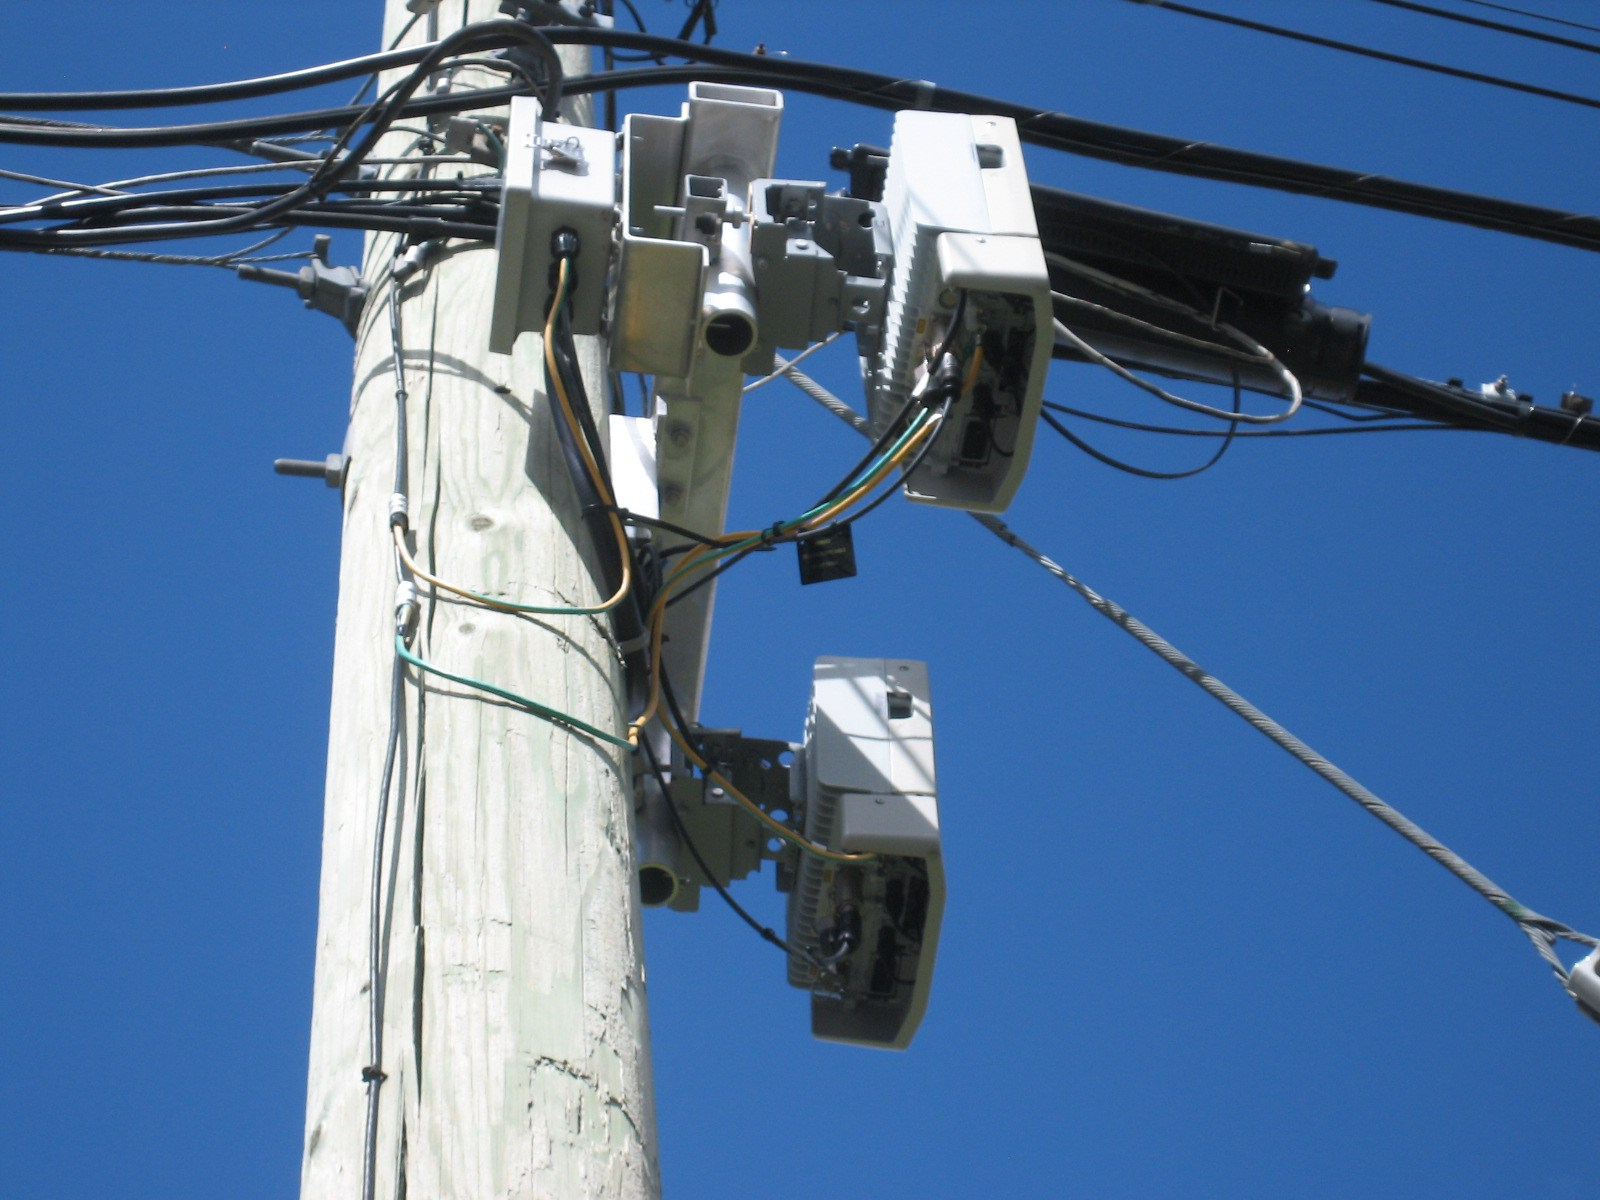 How many 5G cell towers are coming to our communities? Verizon discloses the huge numbers